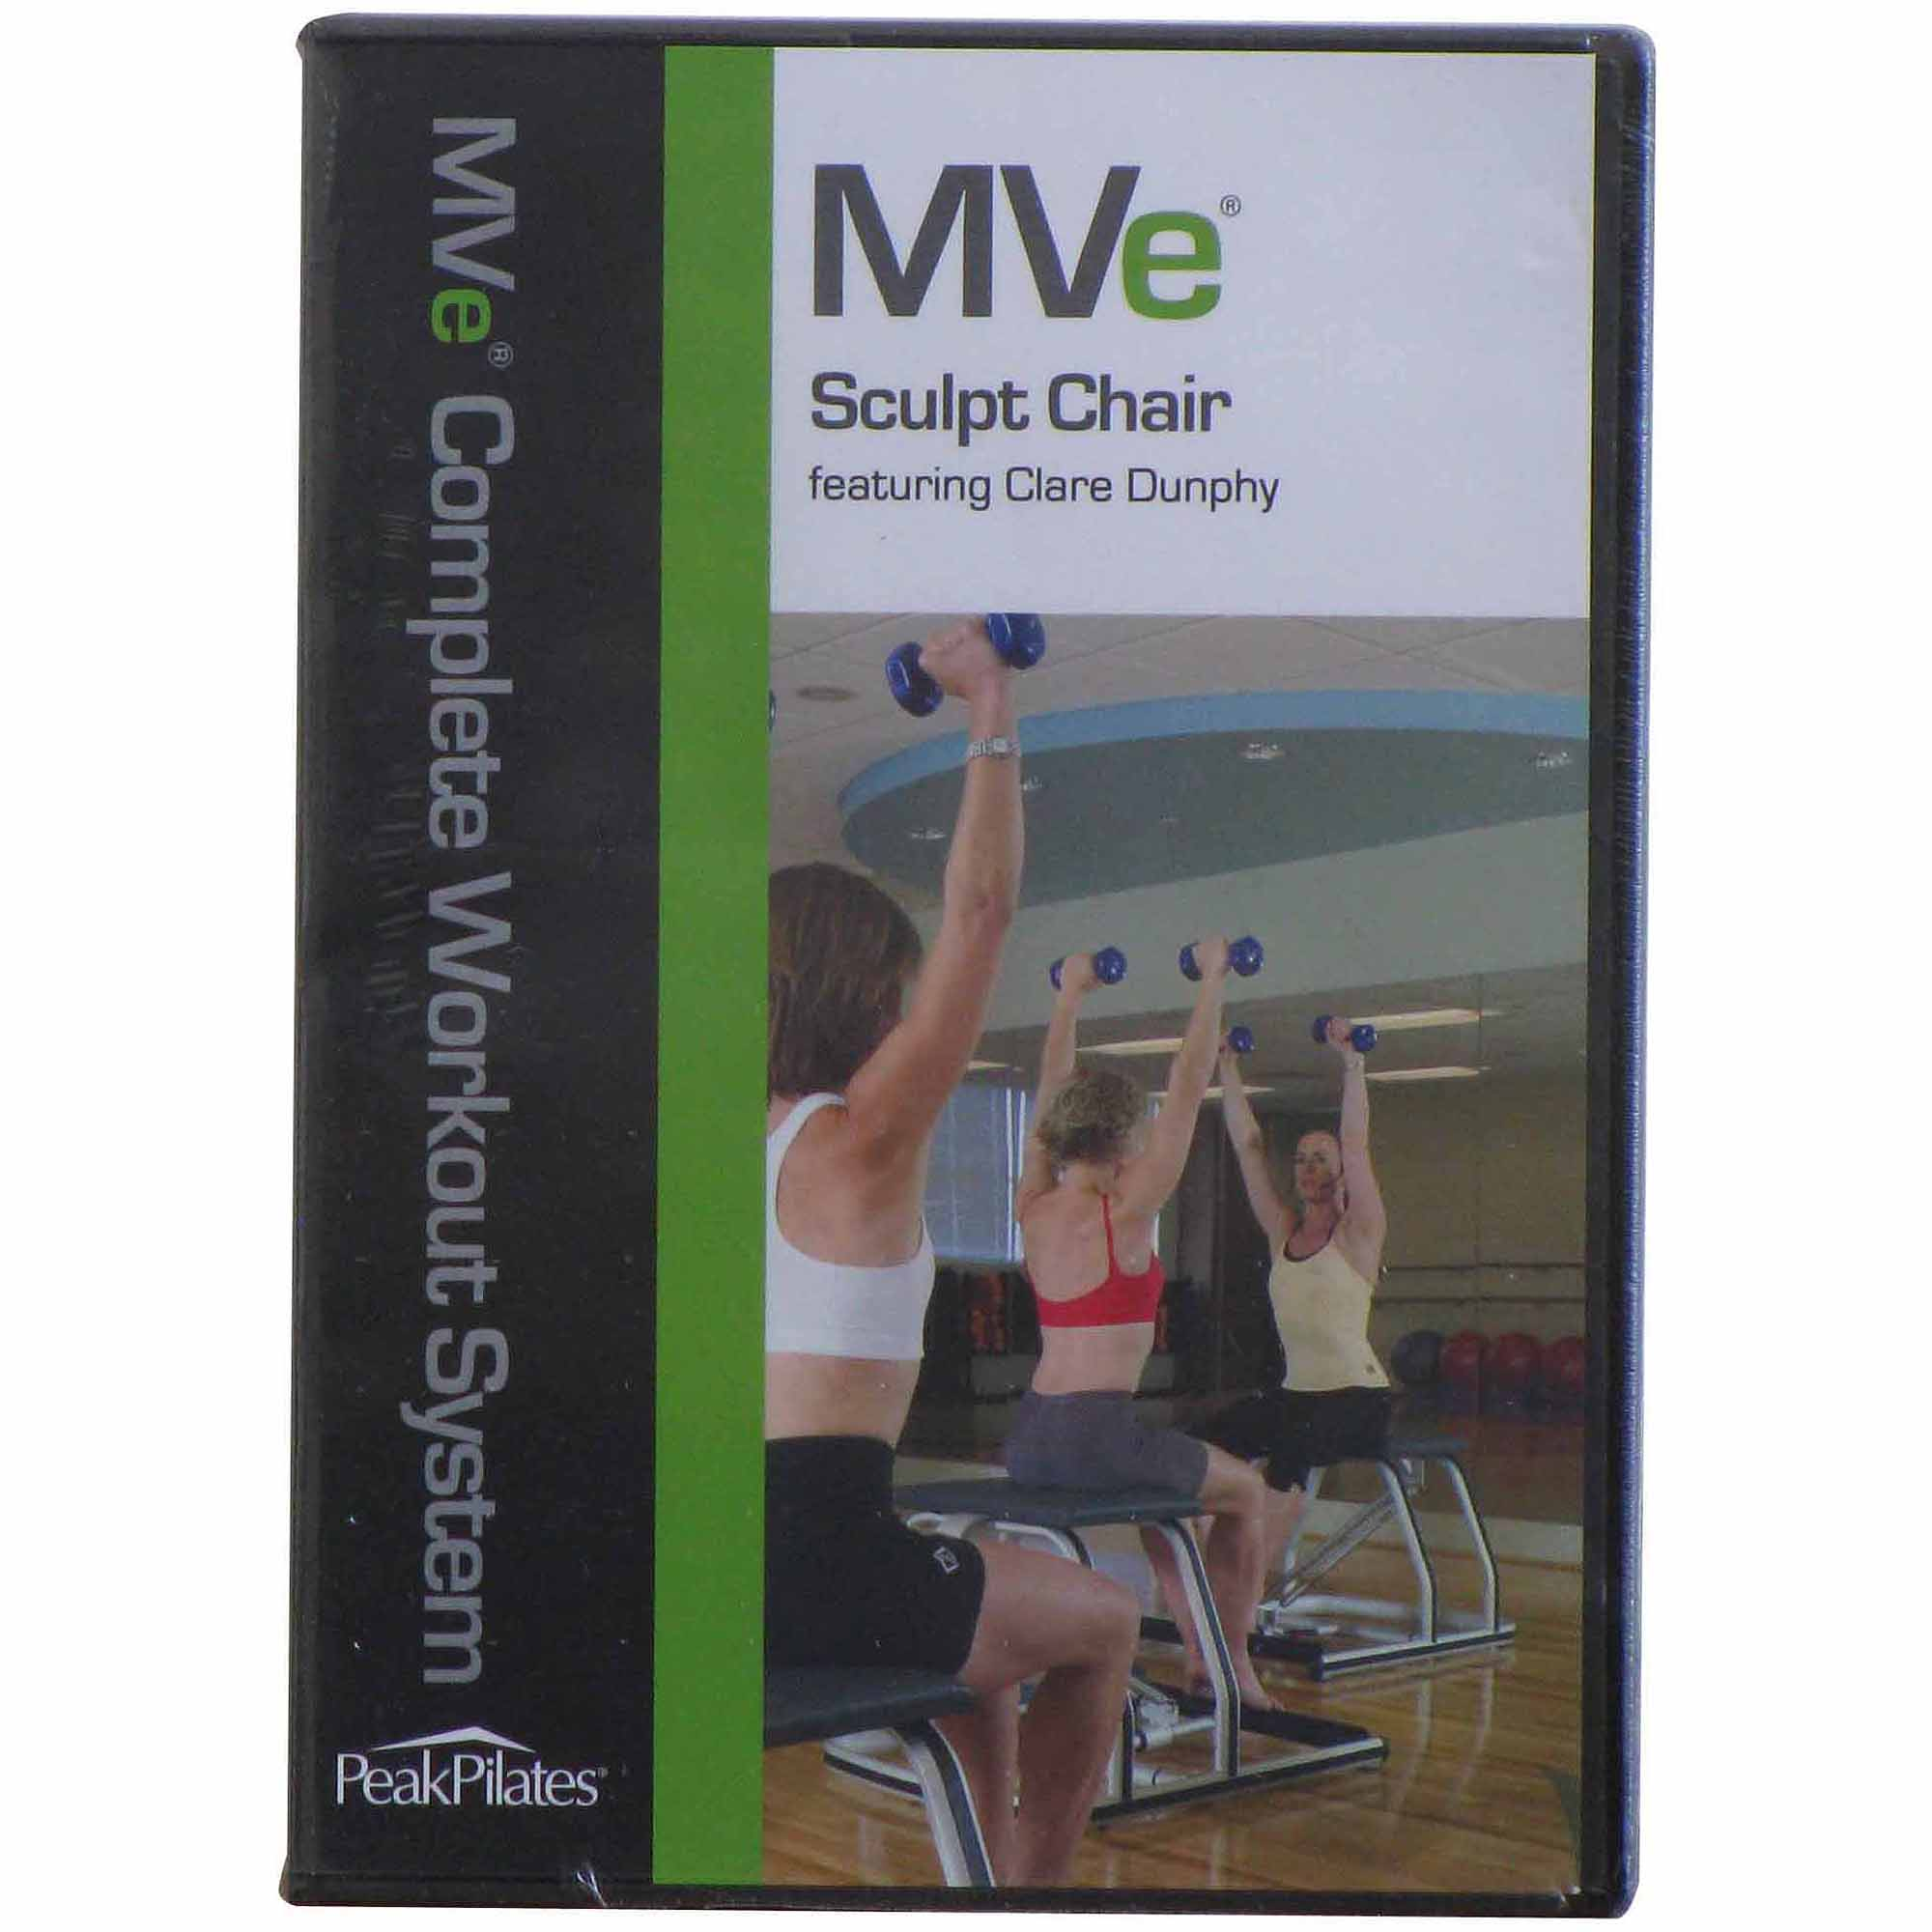 Peak Pilates MVe Sculpt Chair Workout DVD